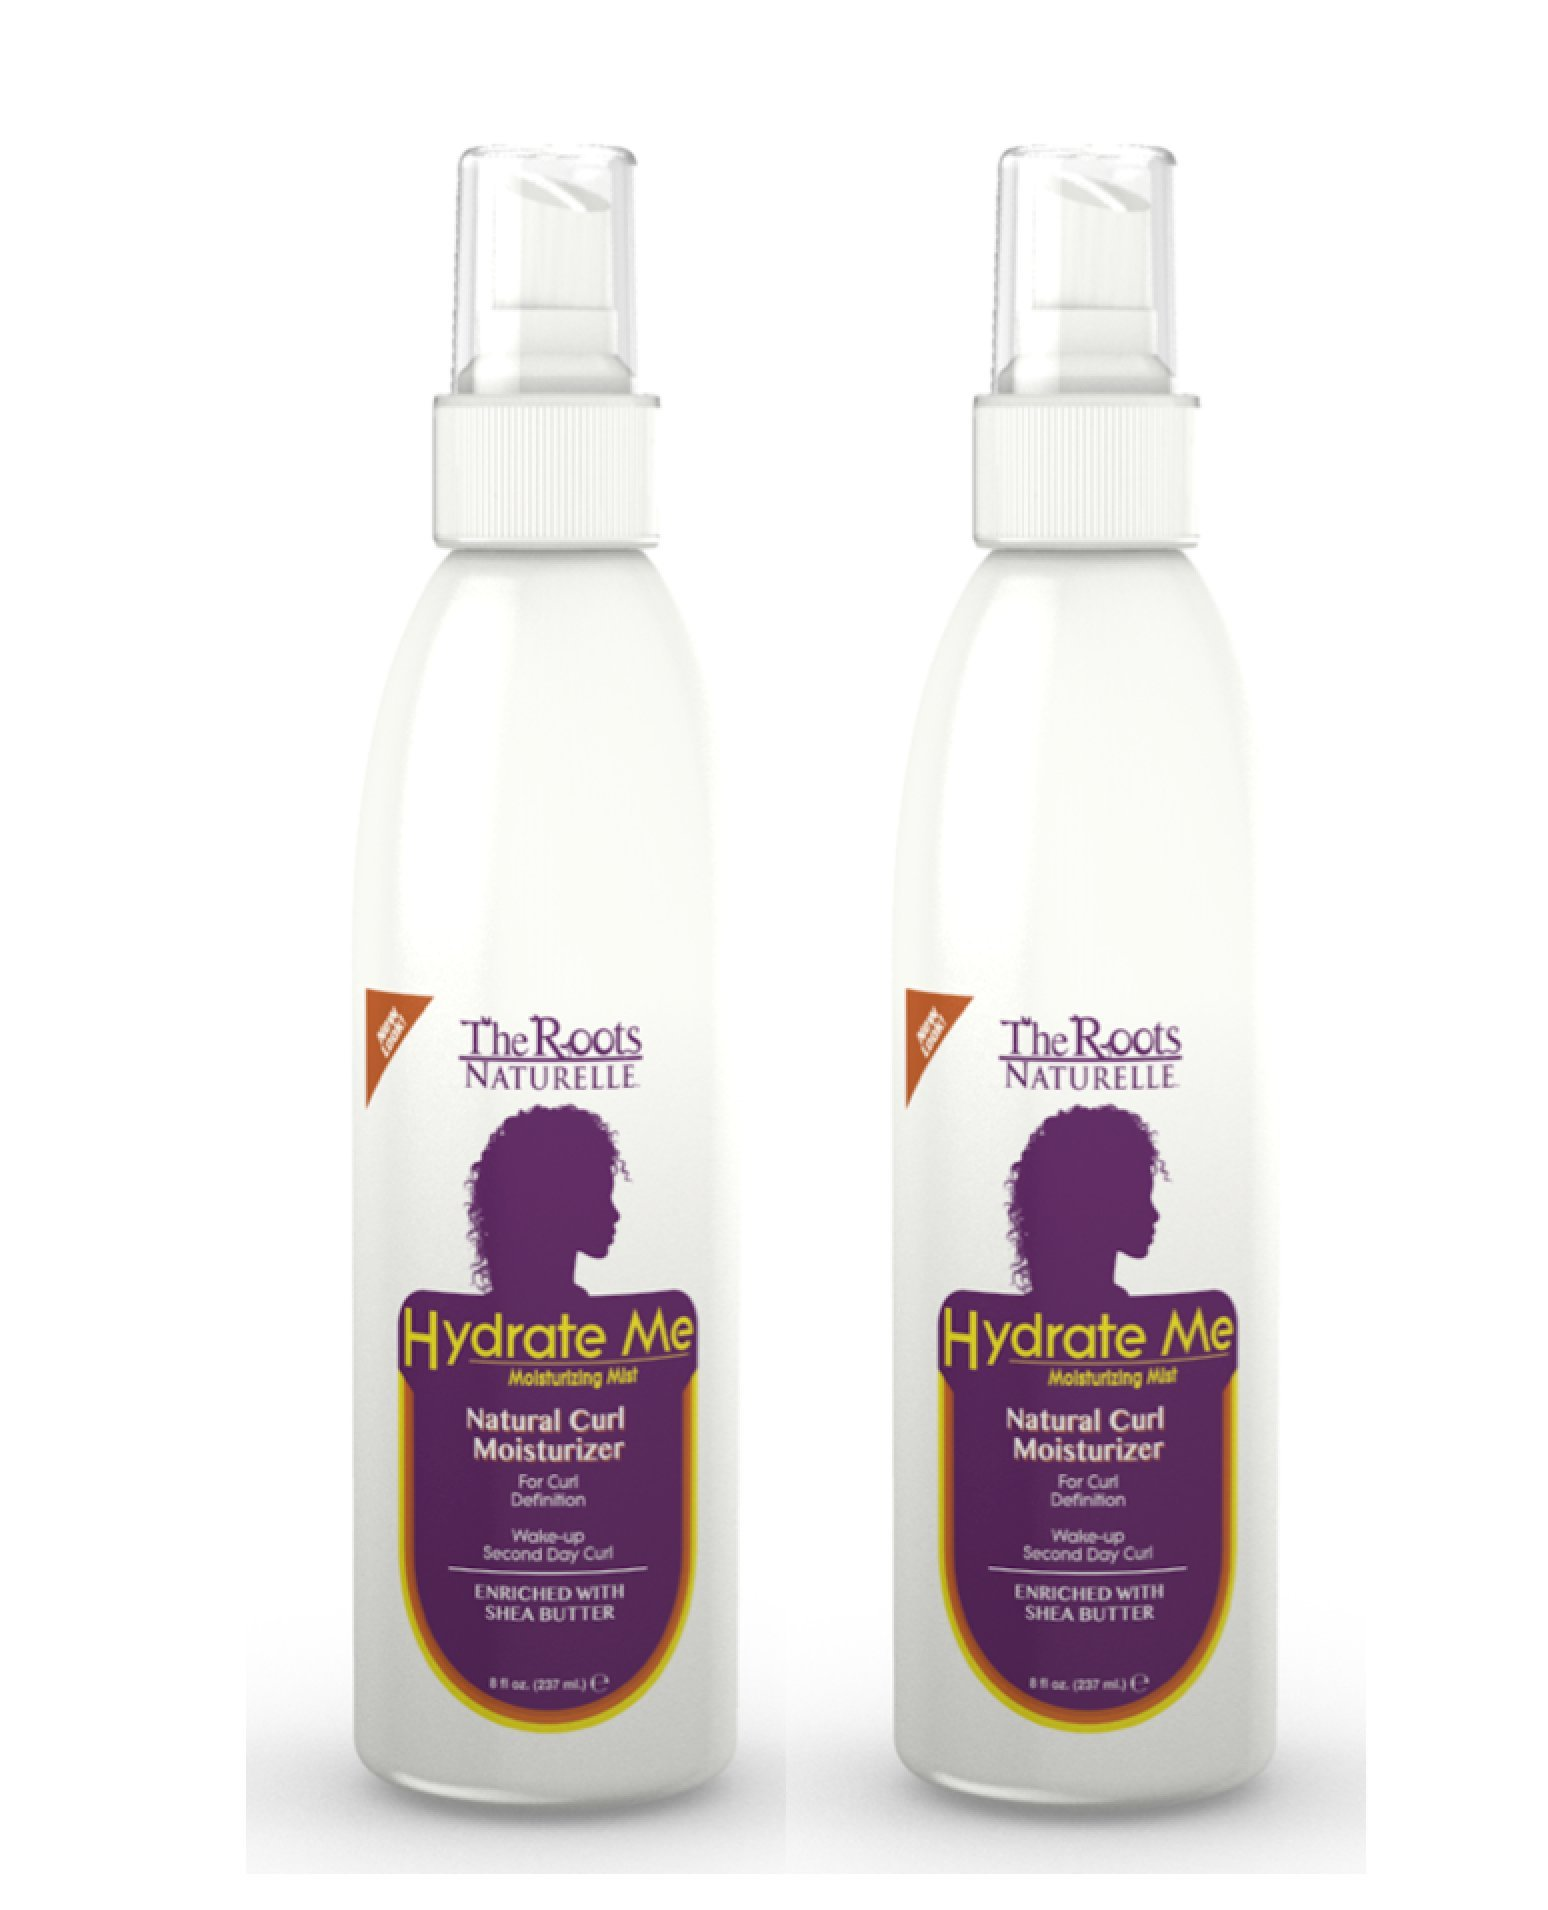 Hydrate Me Natural Curl Moisturizer And Enhancer Enriched With Shea Butter Leave In Conditioner Styling Product Natural Hair Product African American Hair Products For Women 2 Bottles Buy